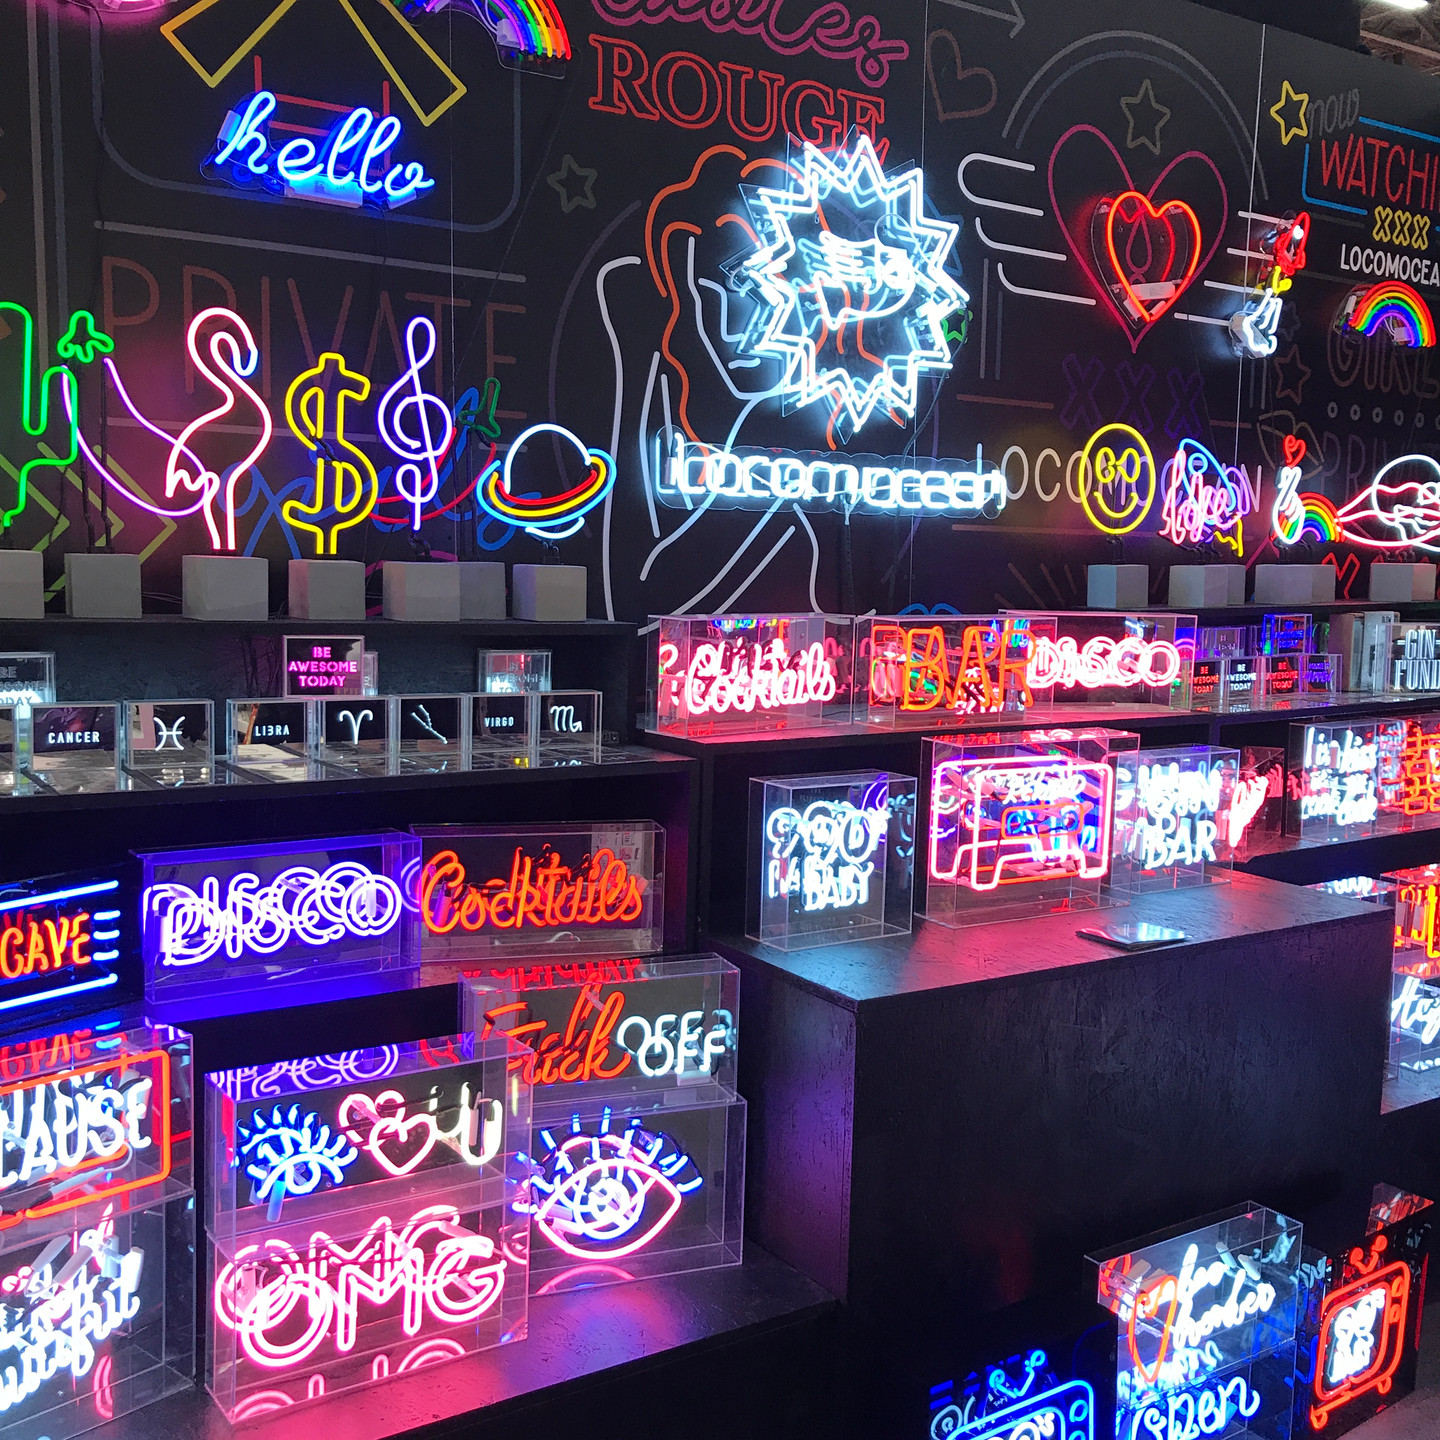 Wall of decorative neon signs